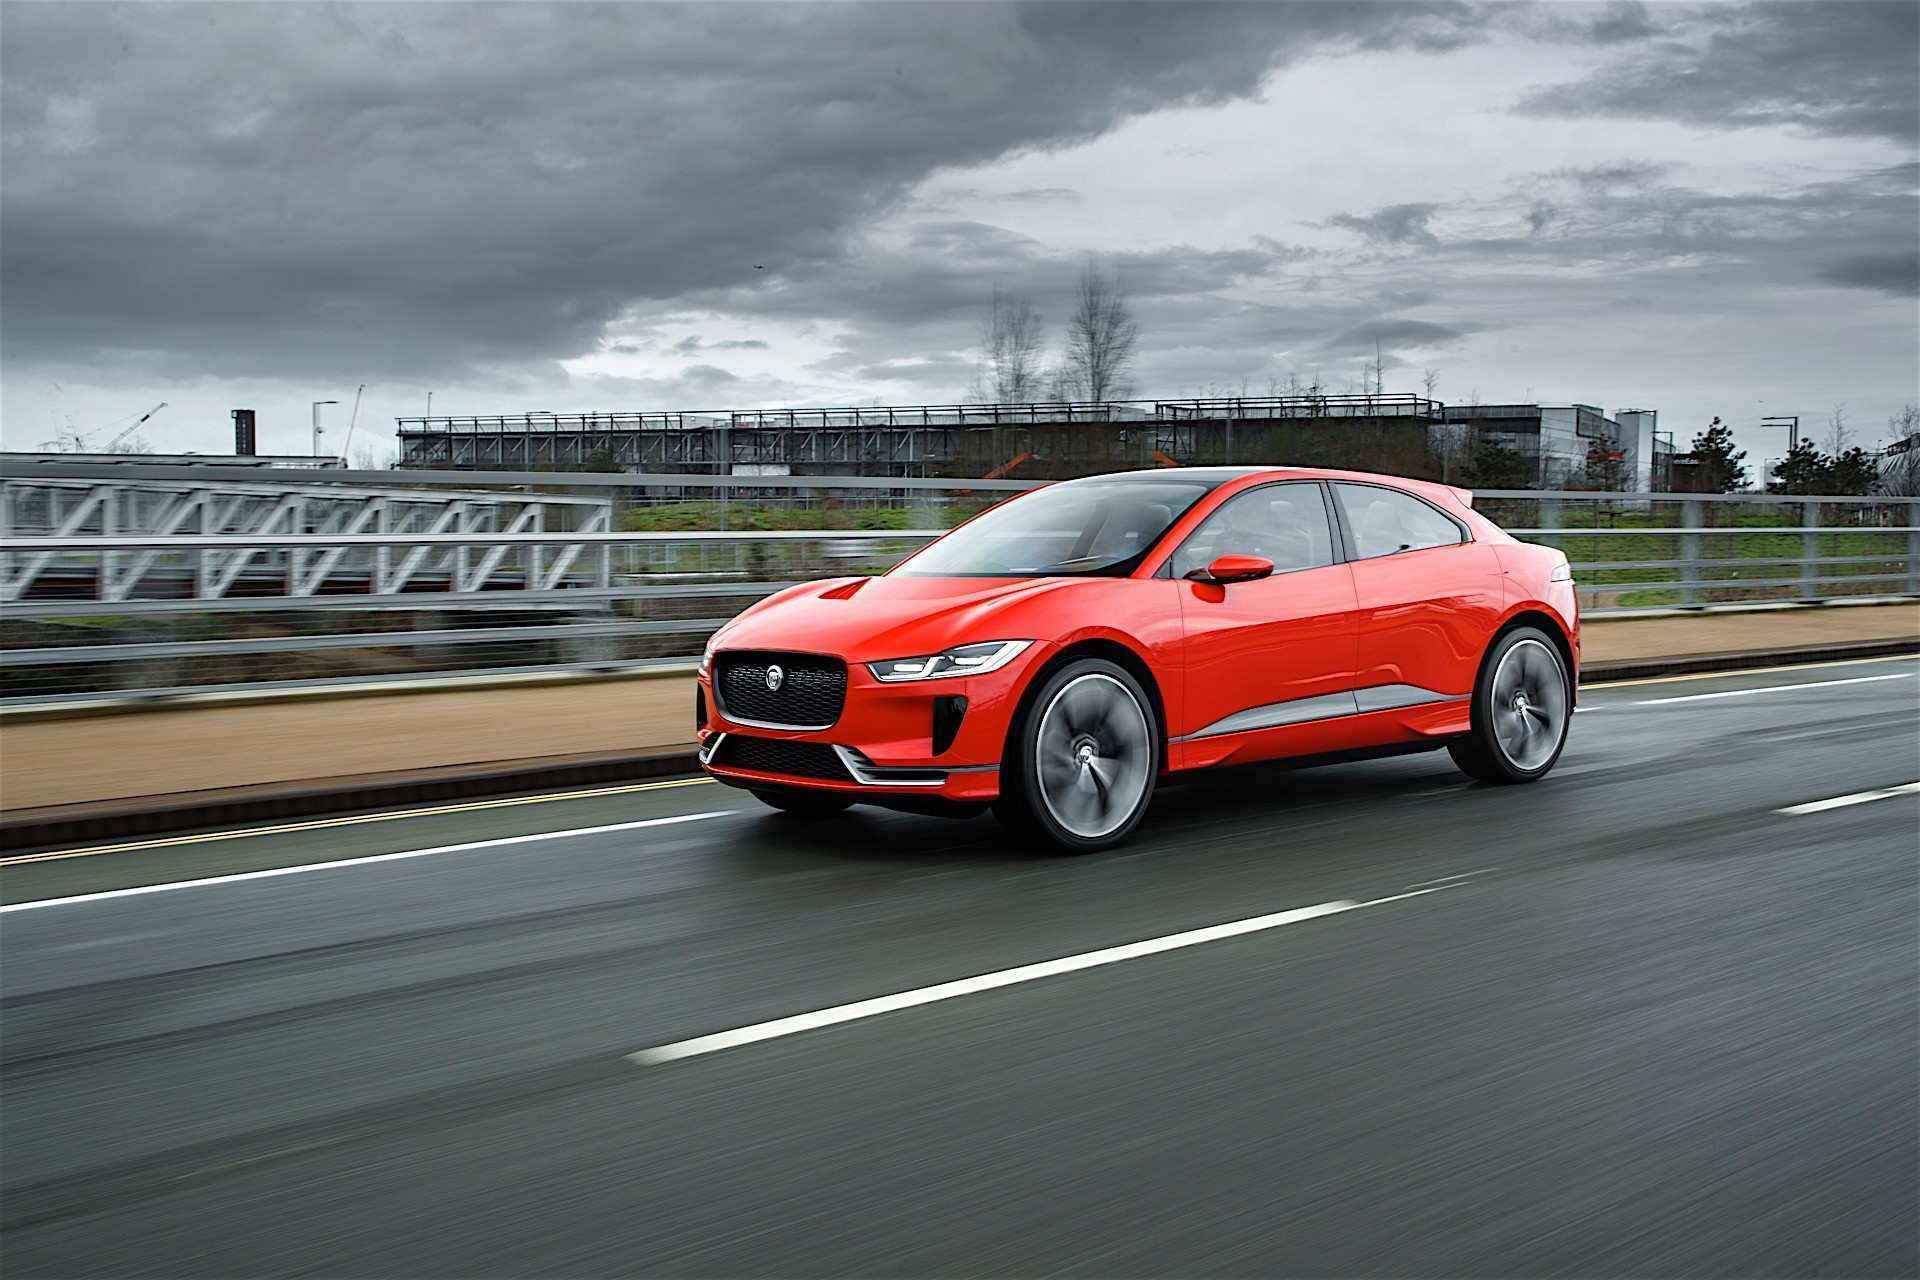 78 New 2019 Jaguar I Pace Electric Interior by 2019 Jaguar I Pace Electric